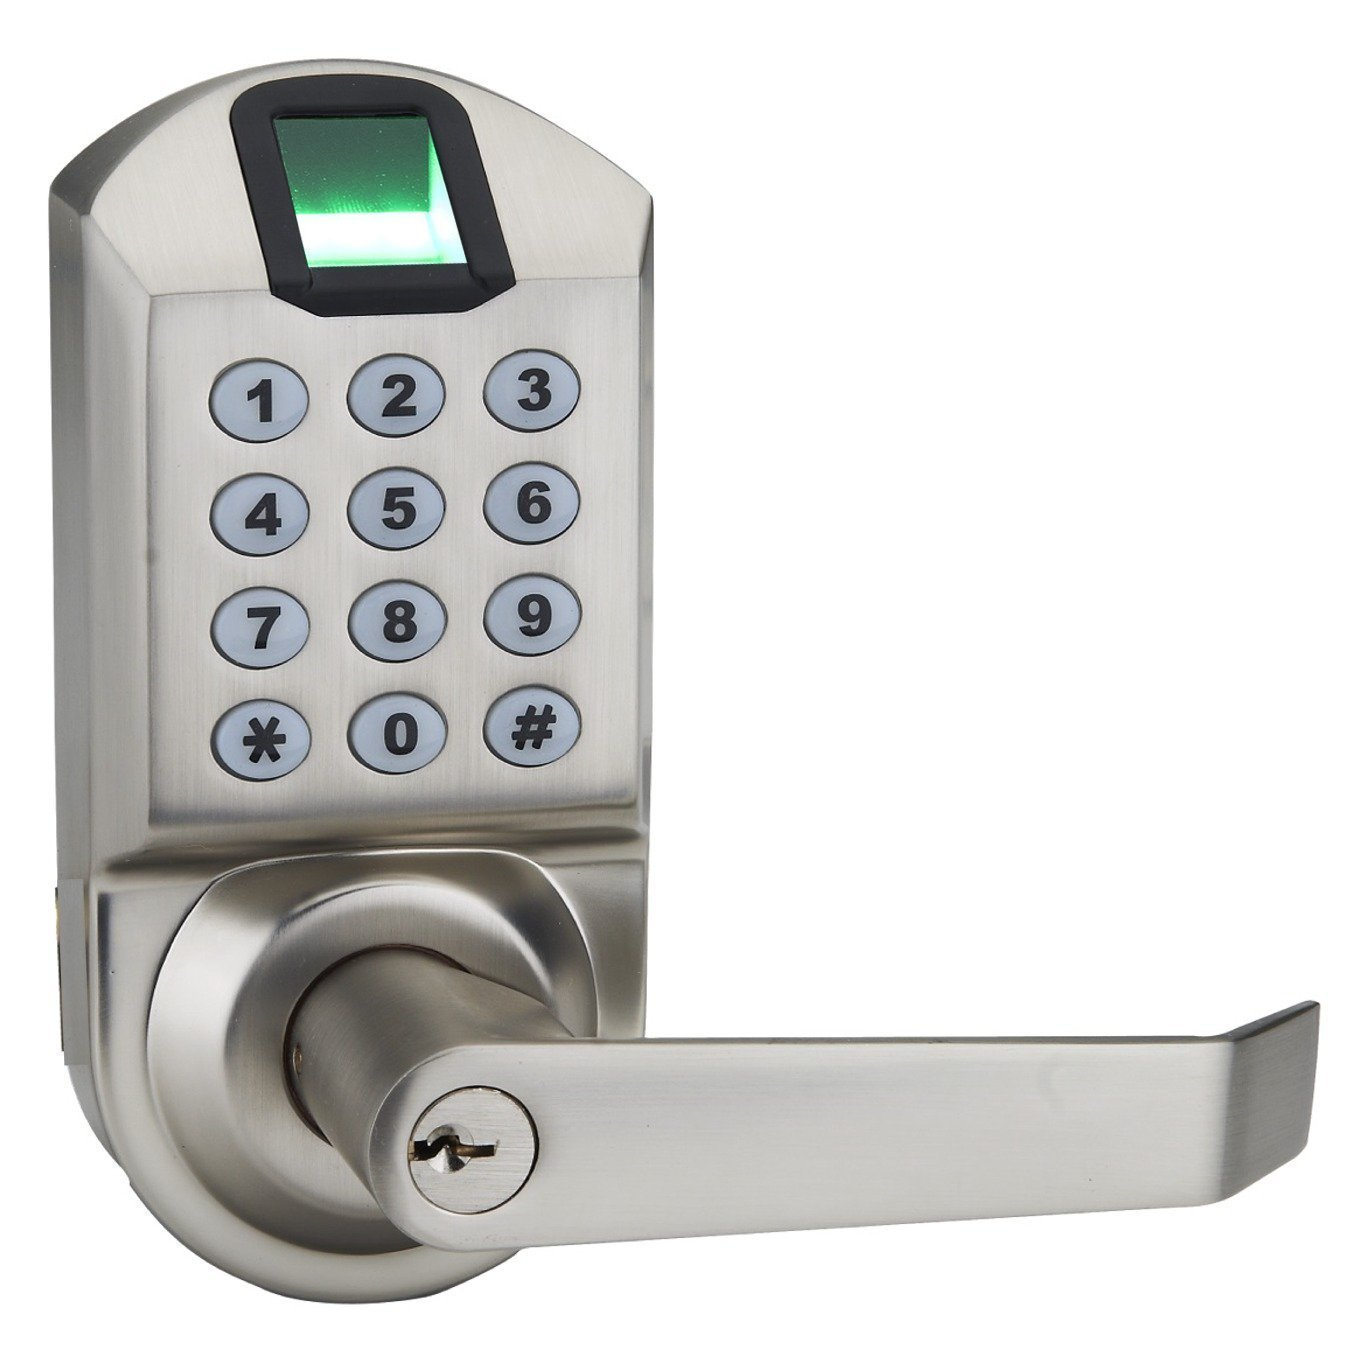 Ardwolf A1 Keyless Keypad Biometric Fingerprint Door Lock